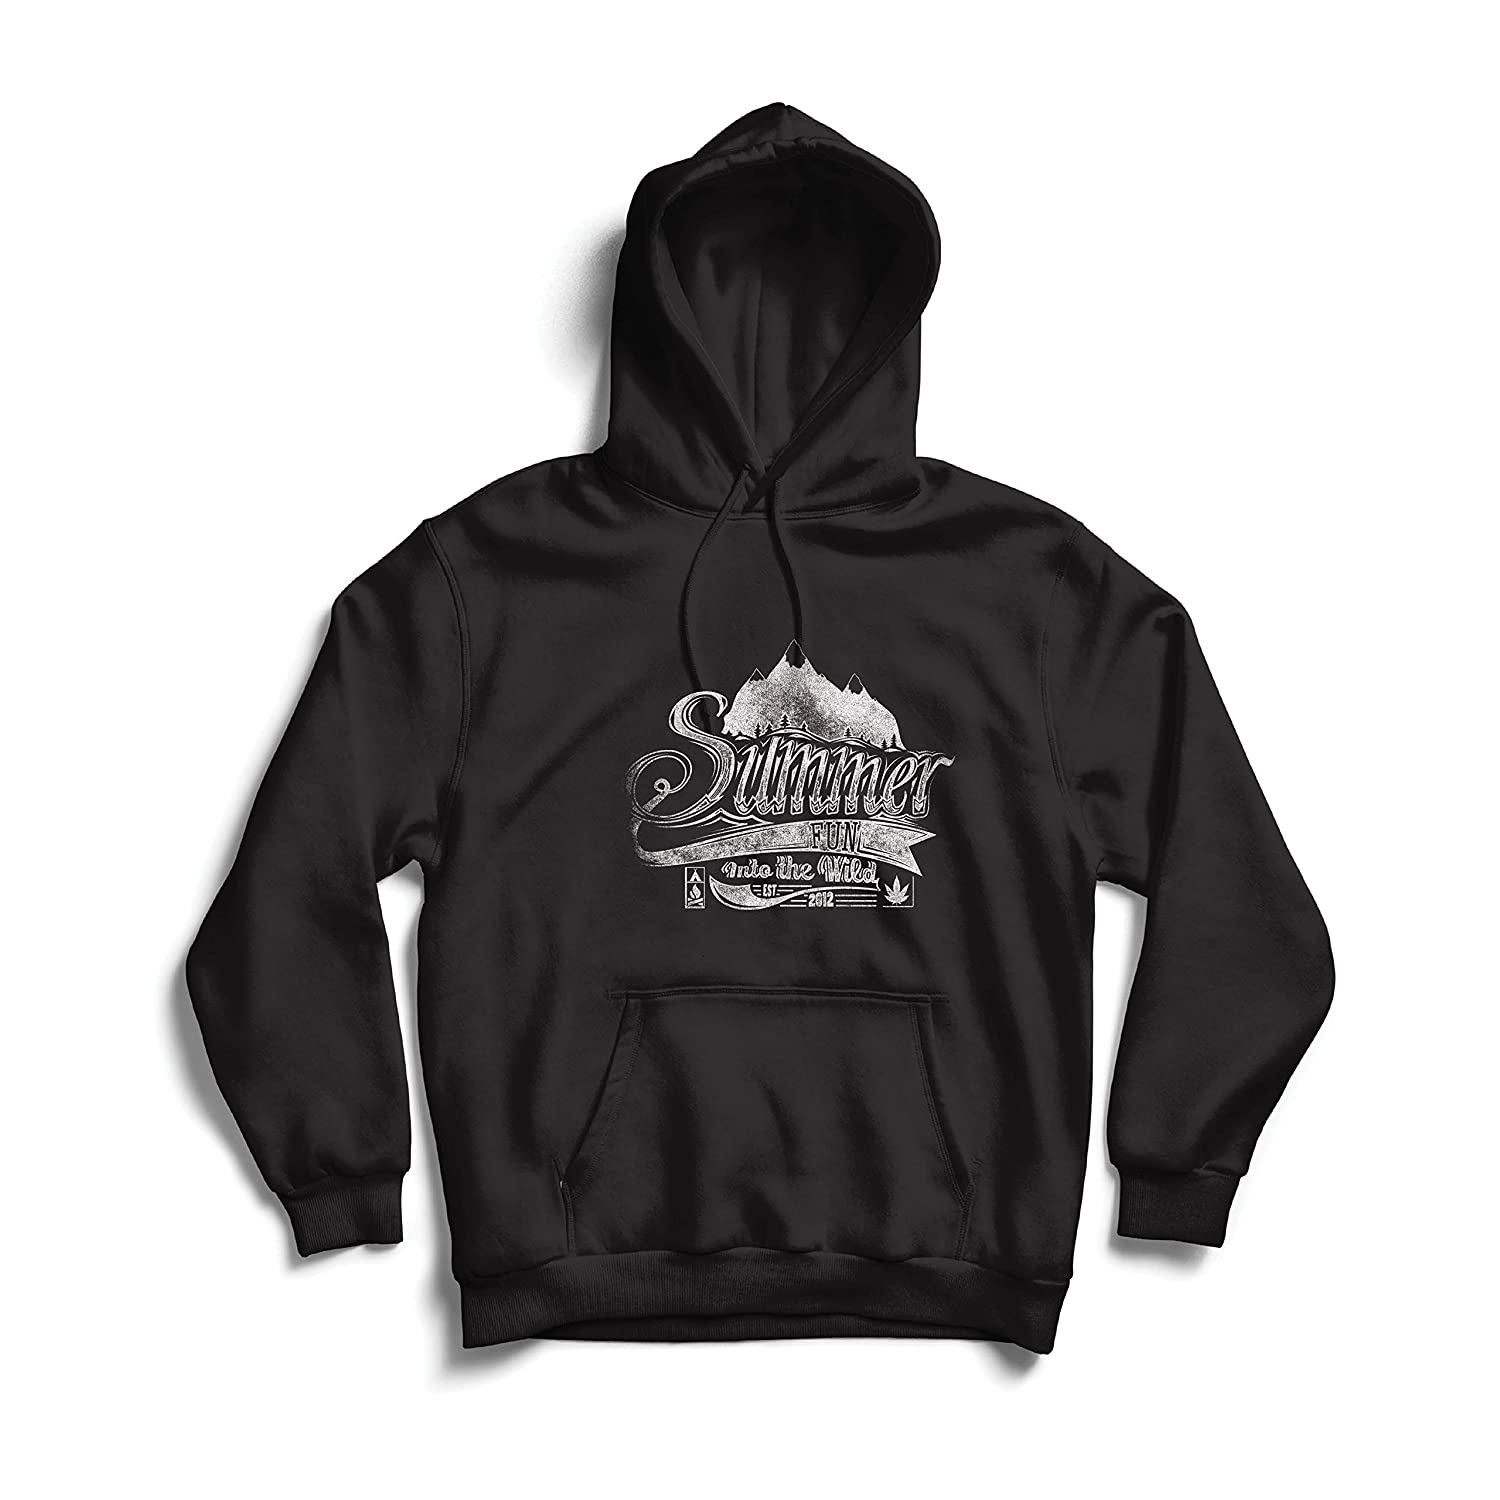 lepni.me Unisex Hoodie Summer Fun into The Wild Inspirational Travel Vacation